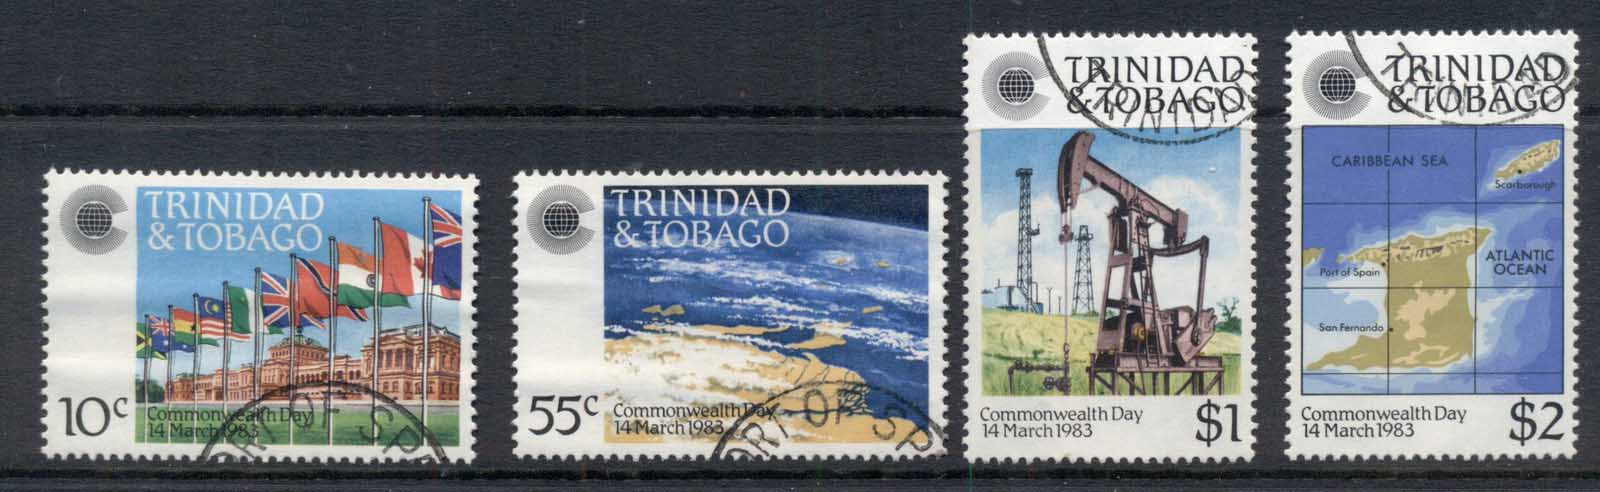 Trinidad & Tobago 1983 Commonwealth Day FU